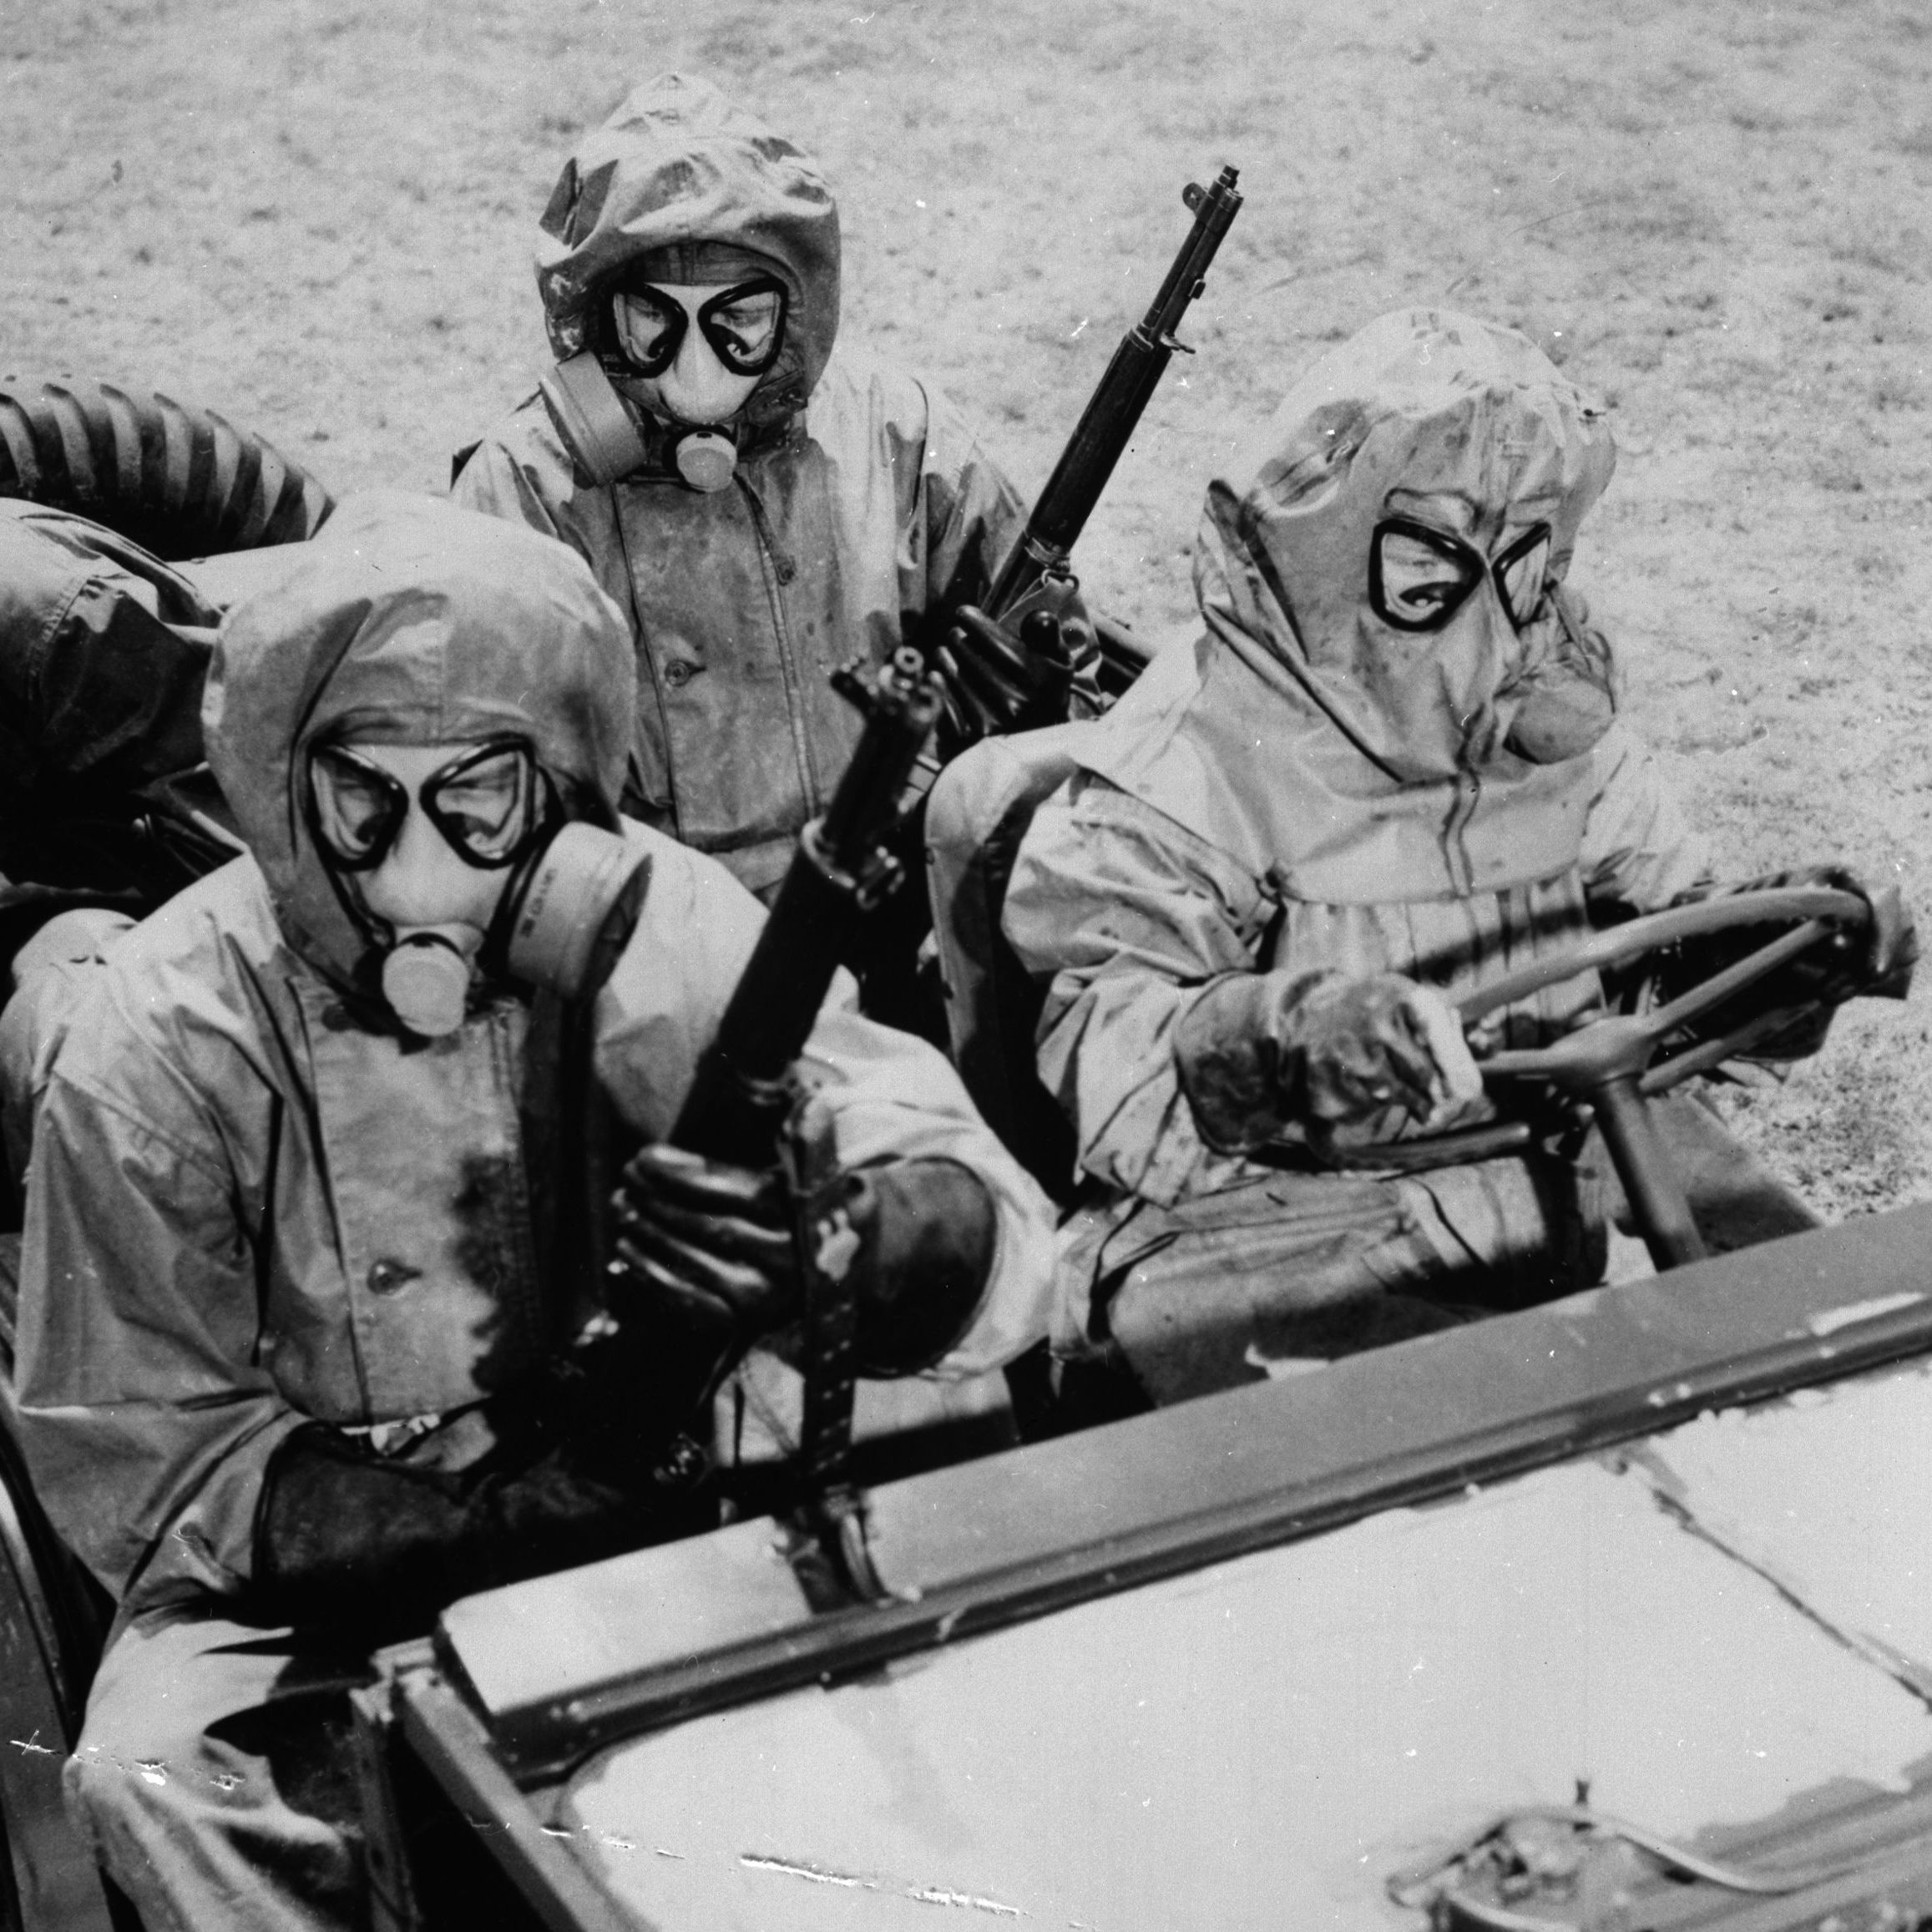 Members of an American Marine chemical team where protective gear at Kaneche in Hawaii in 1959.